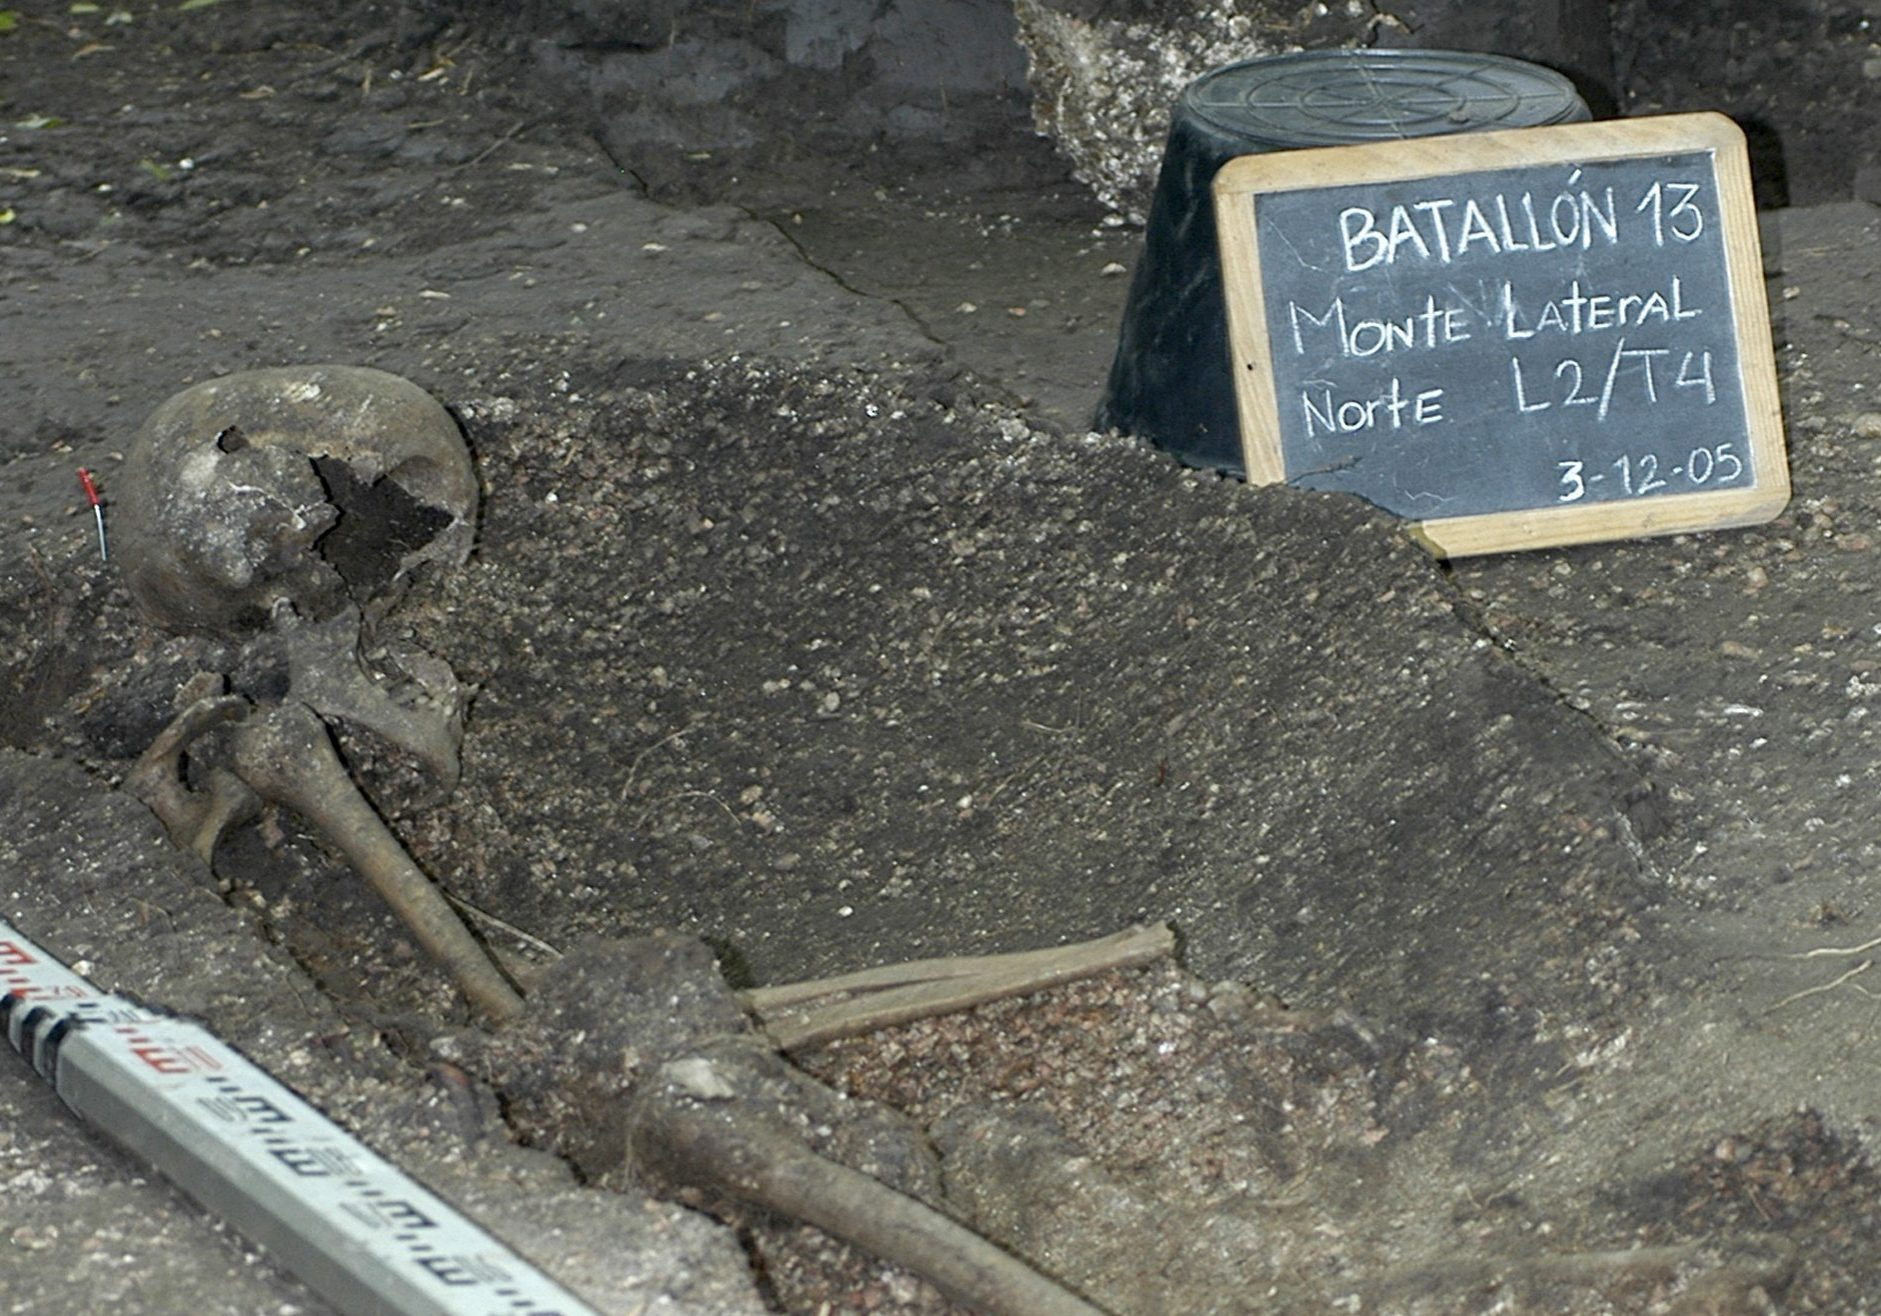 "A skeleton unearthed in 2005 at Battalion 13, Montevideo, Uruguay, by anthropologist José López Mazz, forensic anthropologist Horacio Solla and Dr. Guido Berro. Source: <a href=""http://archivo.presidencia.gub.uy/_web/fotos/2005/12/2005120301.htm"" target=""_BLANK"" rel=""noopener noreferrer"">presidencia.gub.uy</a>"